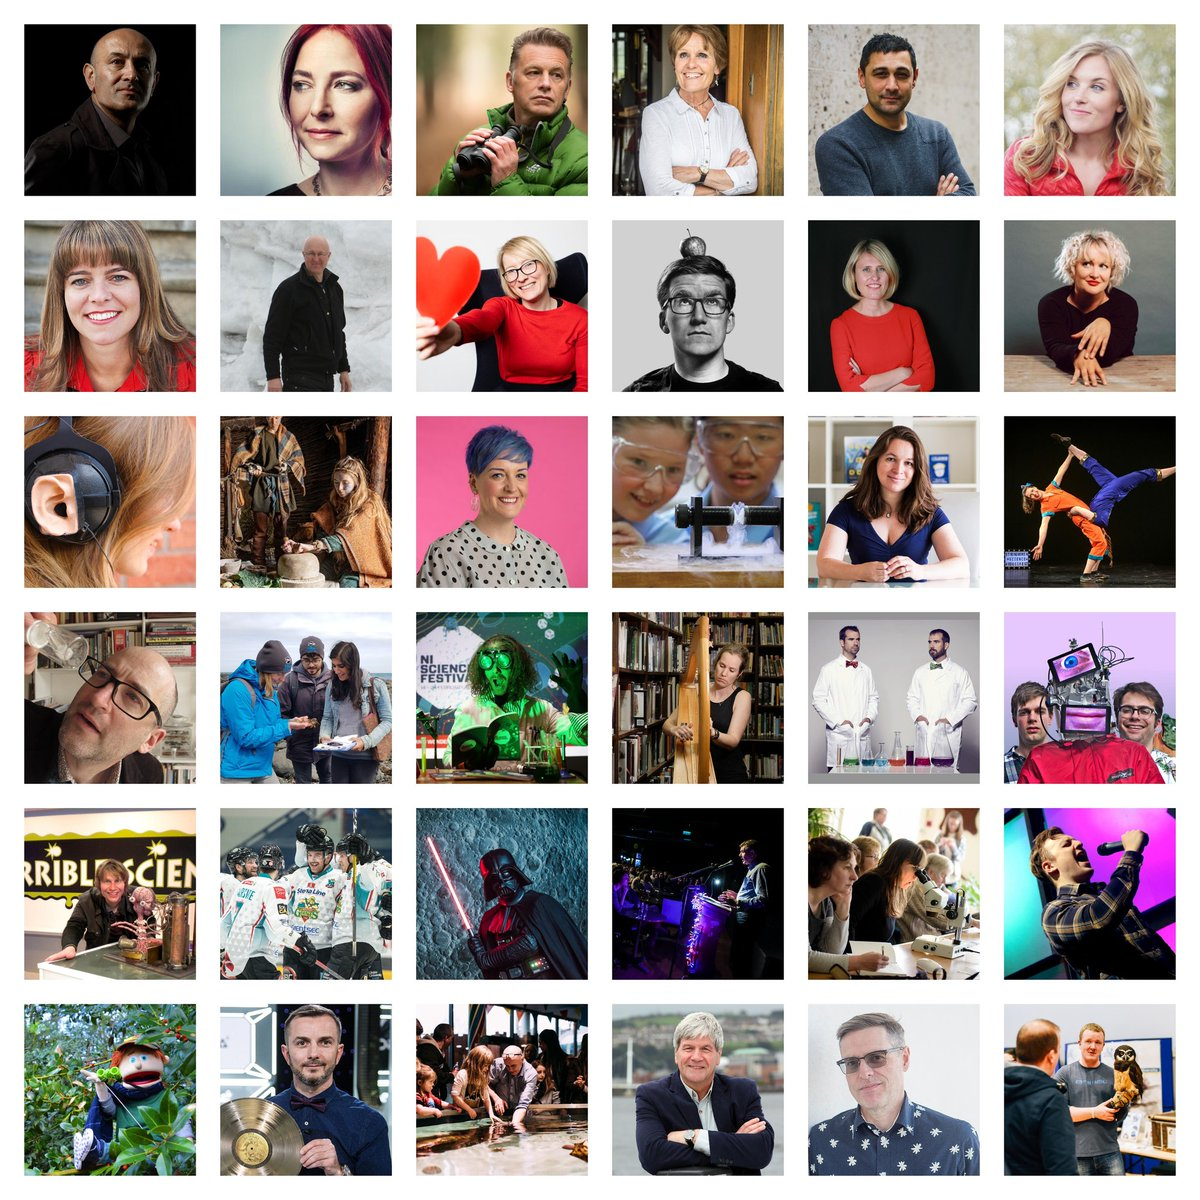 From @ChrisGPackham to @theAliceRoberts to @maddiemoate to @doctor_oxford to @AdamRutherford to @jimalkhalili to @oortkuiper the 2020 NI Science Festival returns with something for everyone. Join us from 13 - 23 February! Let your mind wonder... nisciencefestival.com